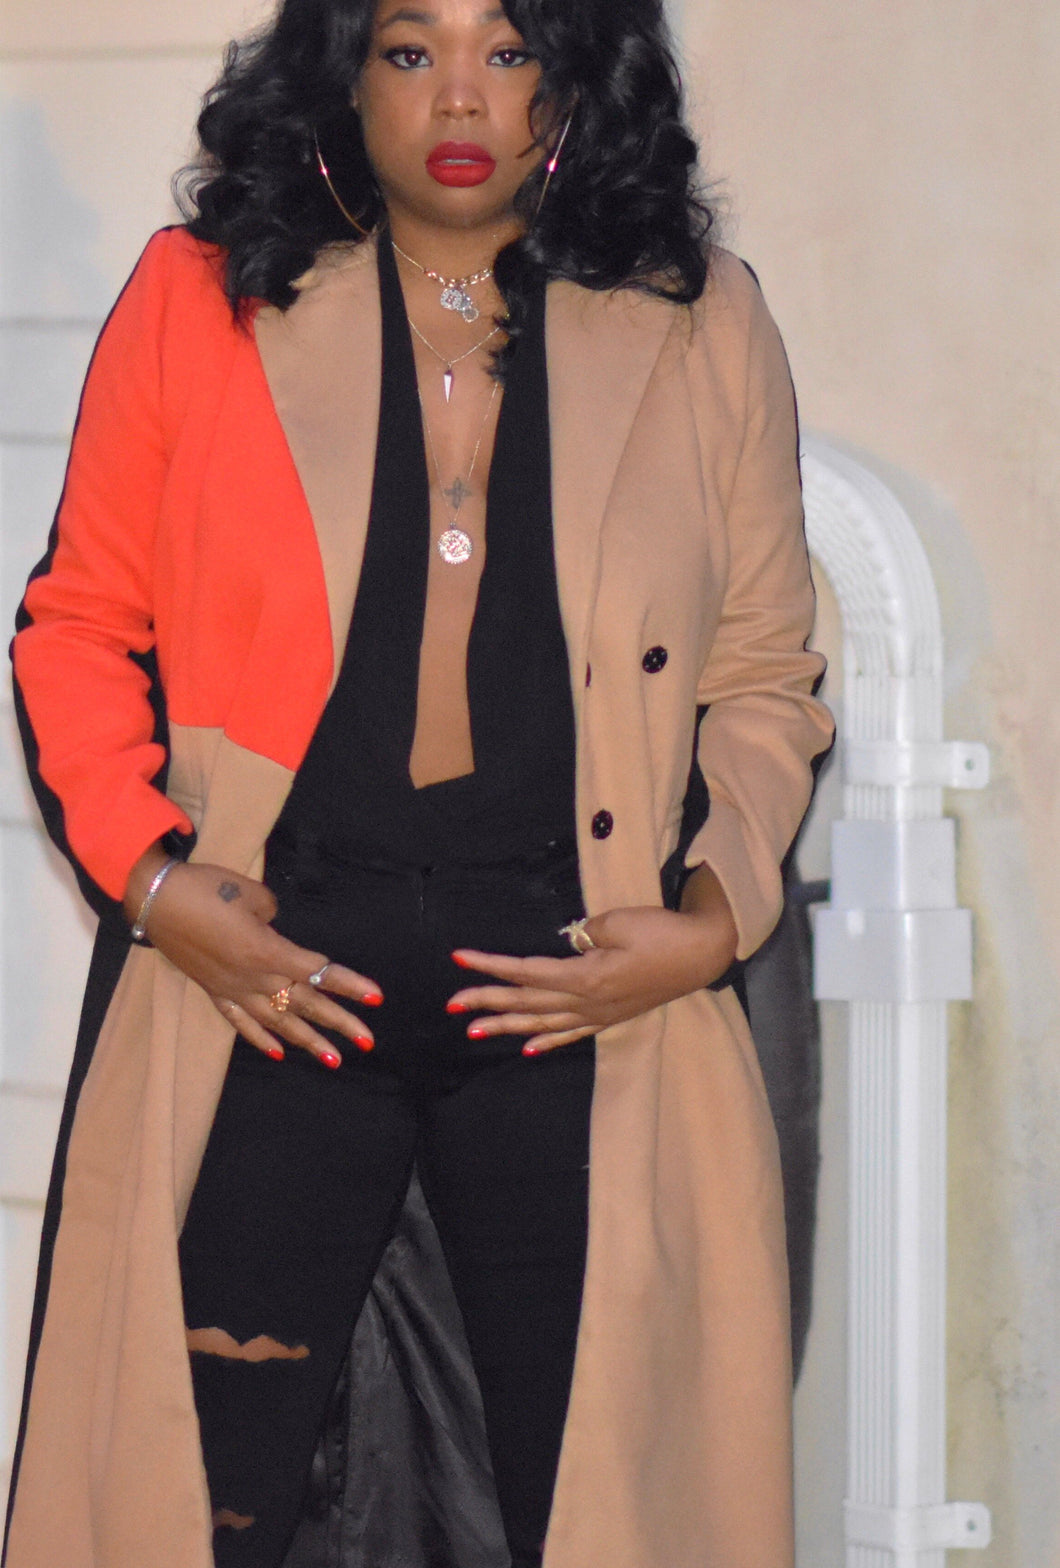 Color Block Longline Trench Coat in camel and coral.